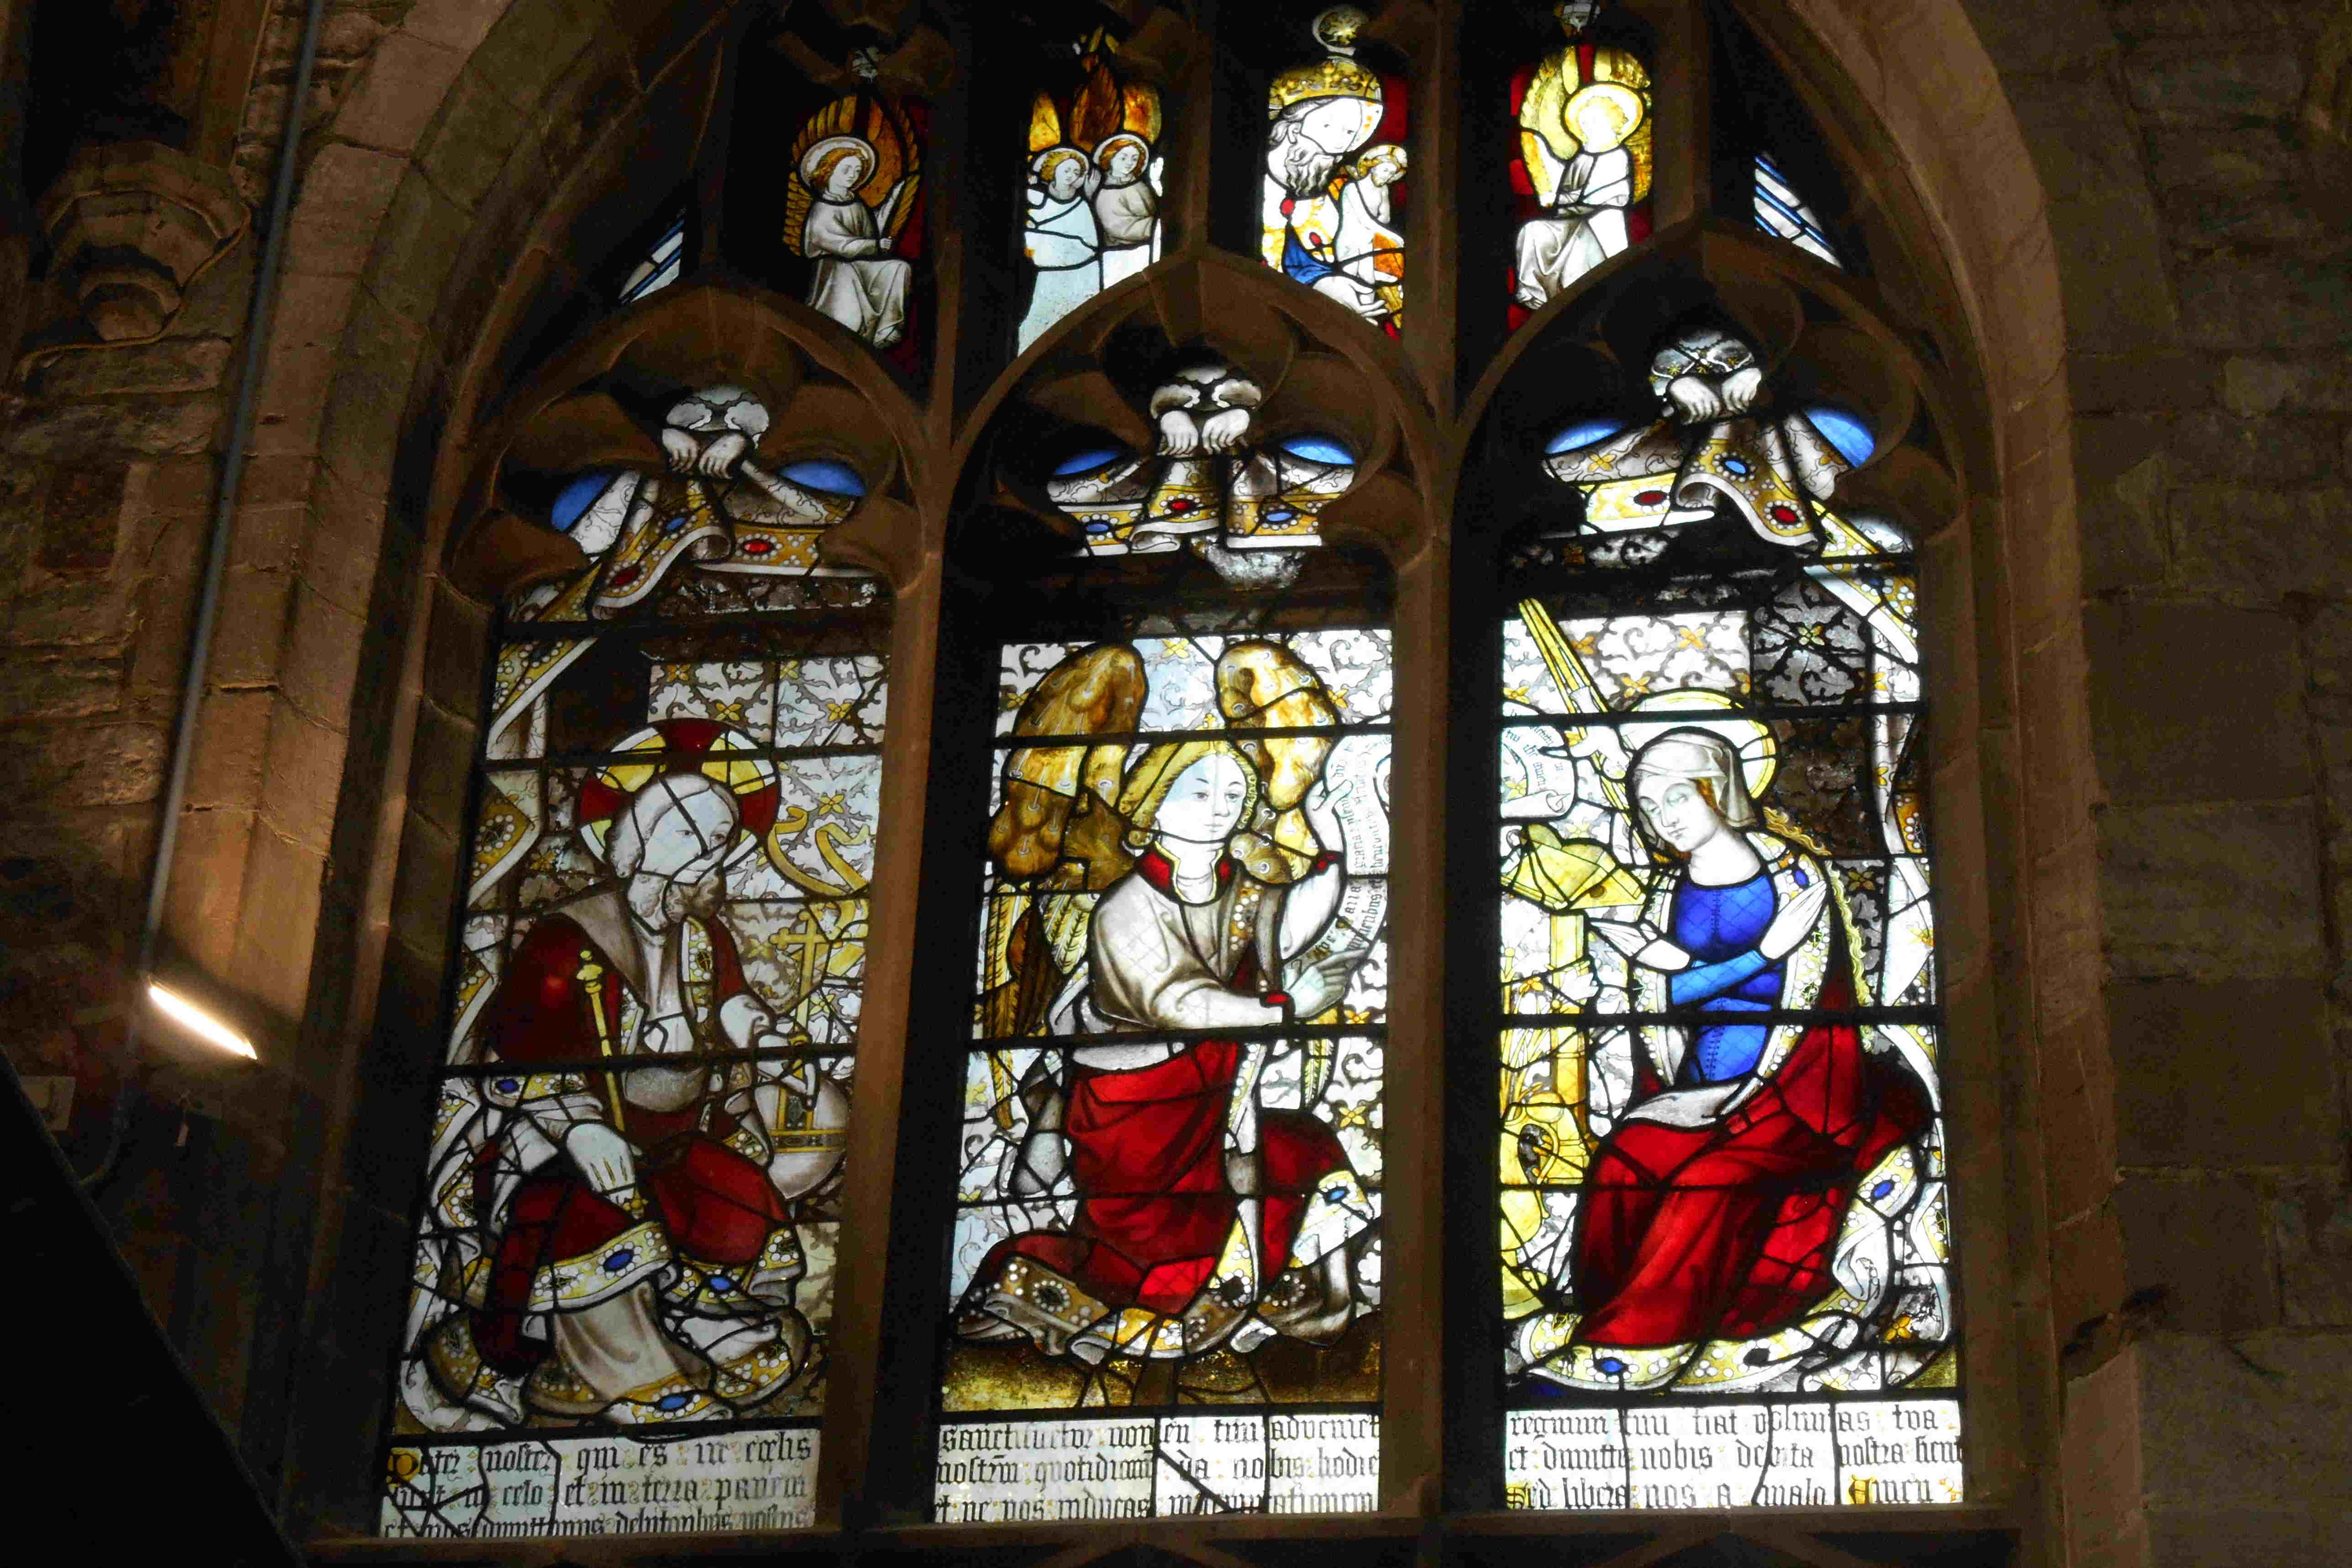 The Annunciation window in St Laurence, Ludlow